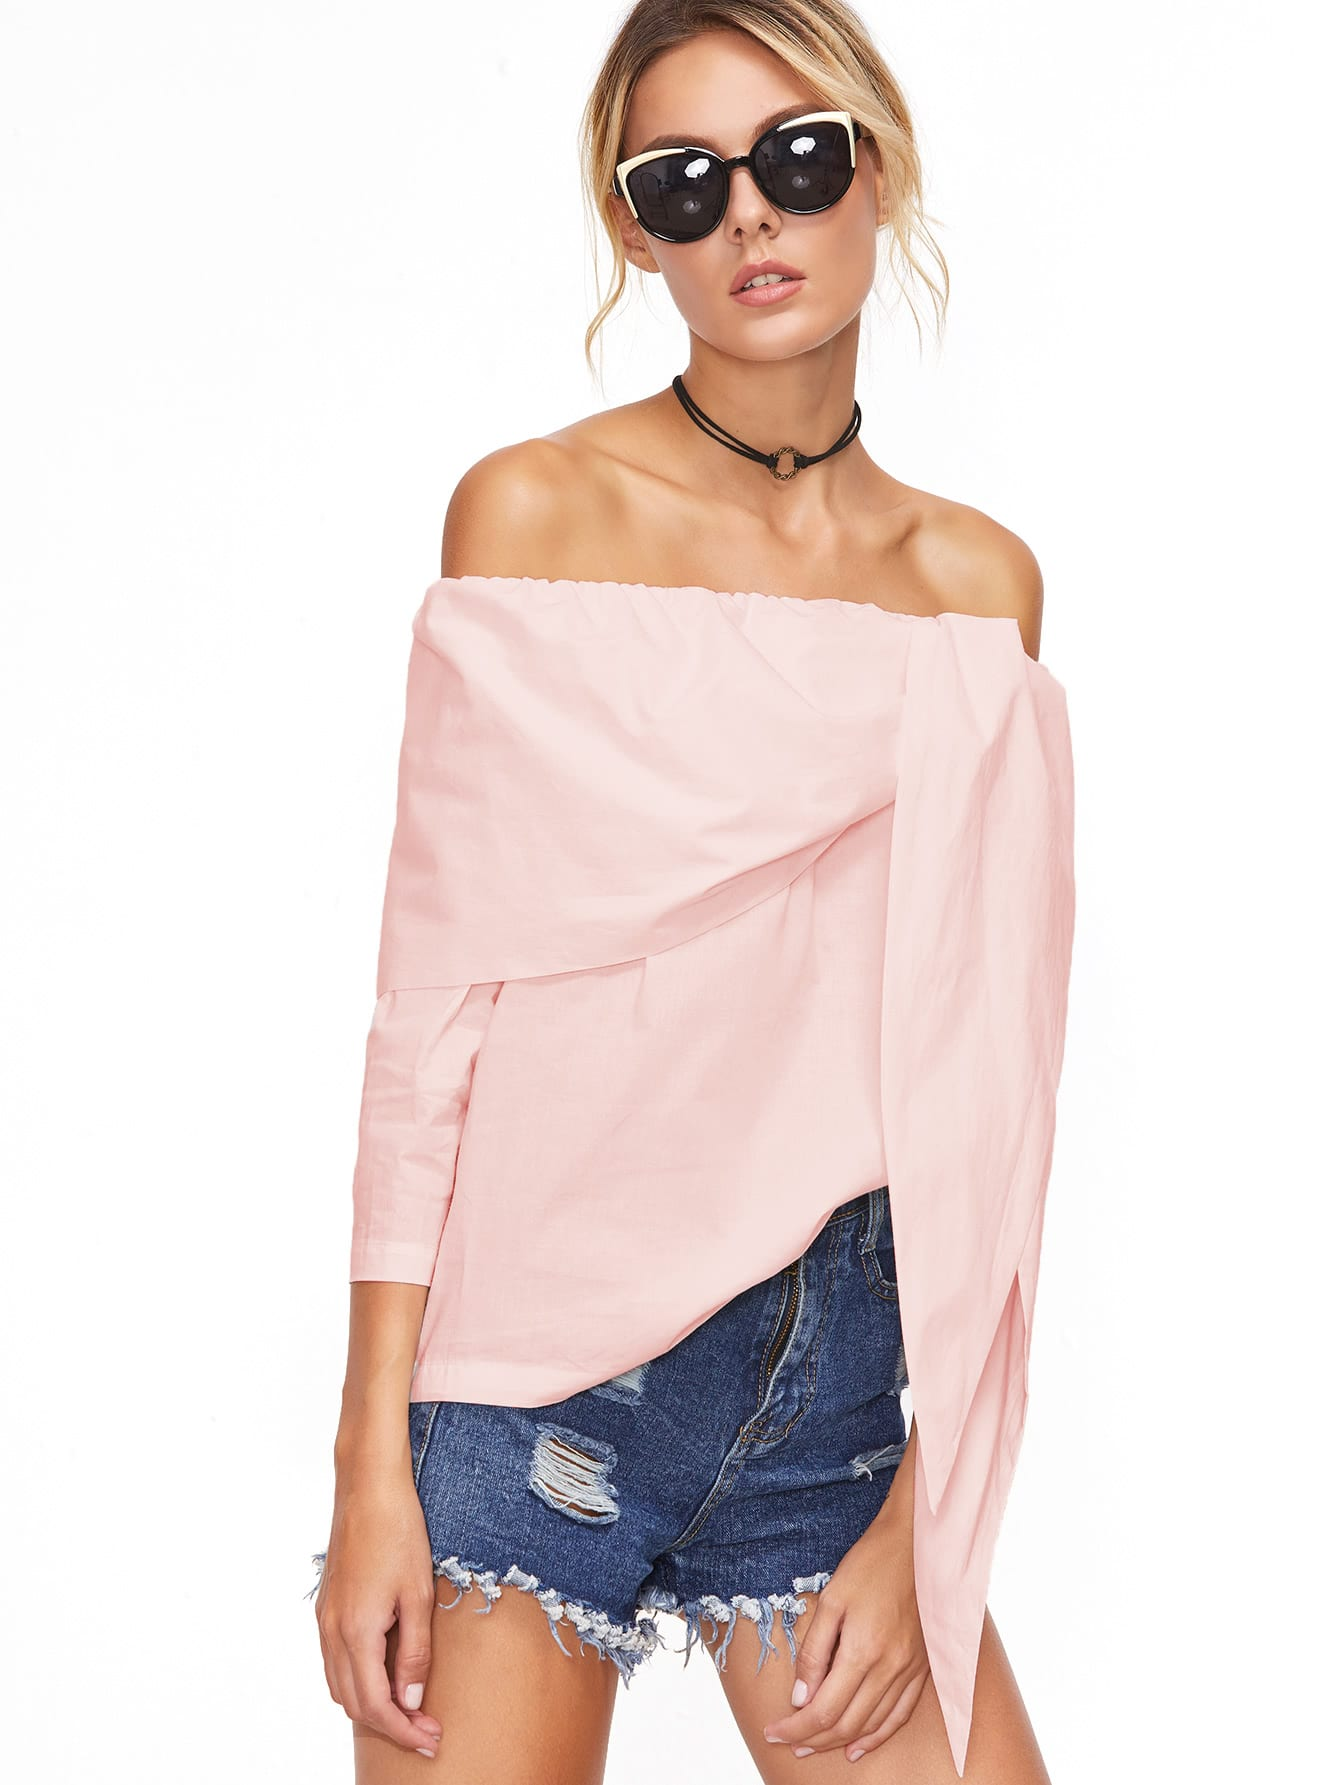 Fold Off Shoulder Tunic Top blouse170228701